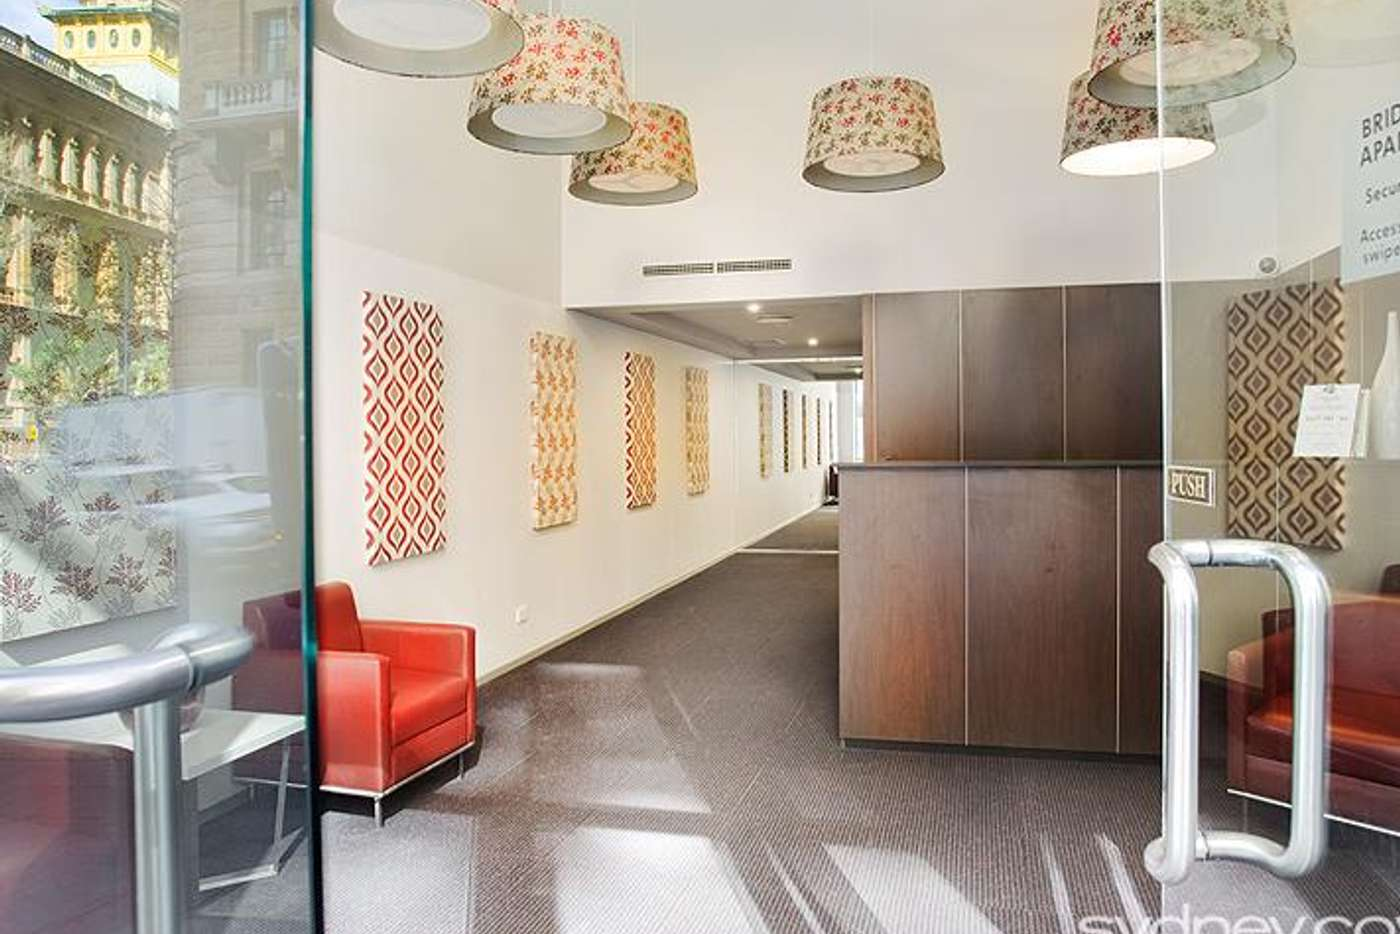 Seventh view of Homely apartment listing, 38 Bridge Street, Sydney NSW 2000